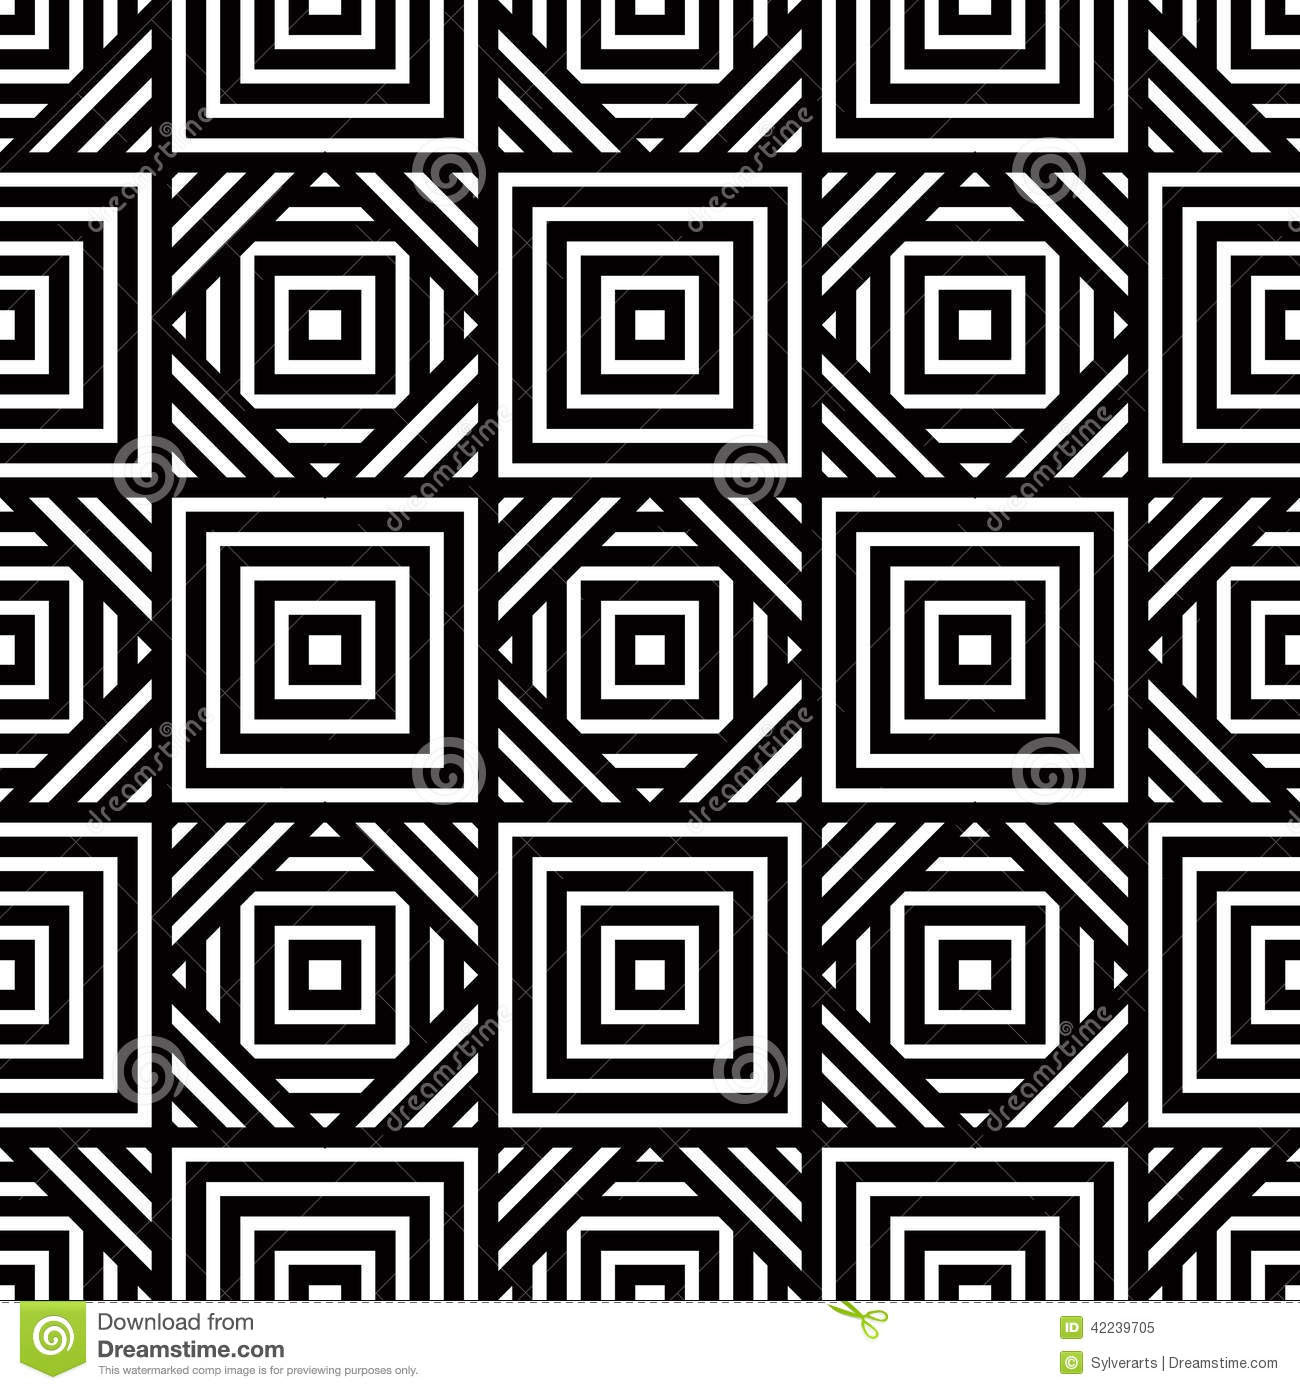 17 White And Geometric Black Designs Images Black And White